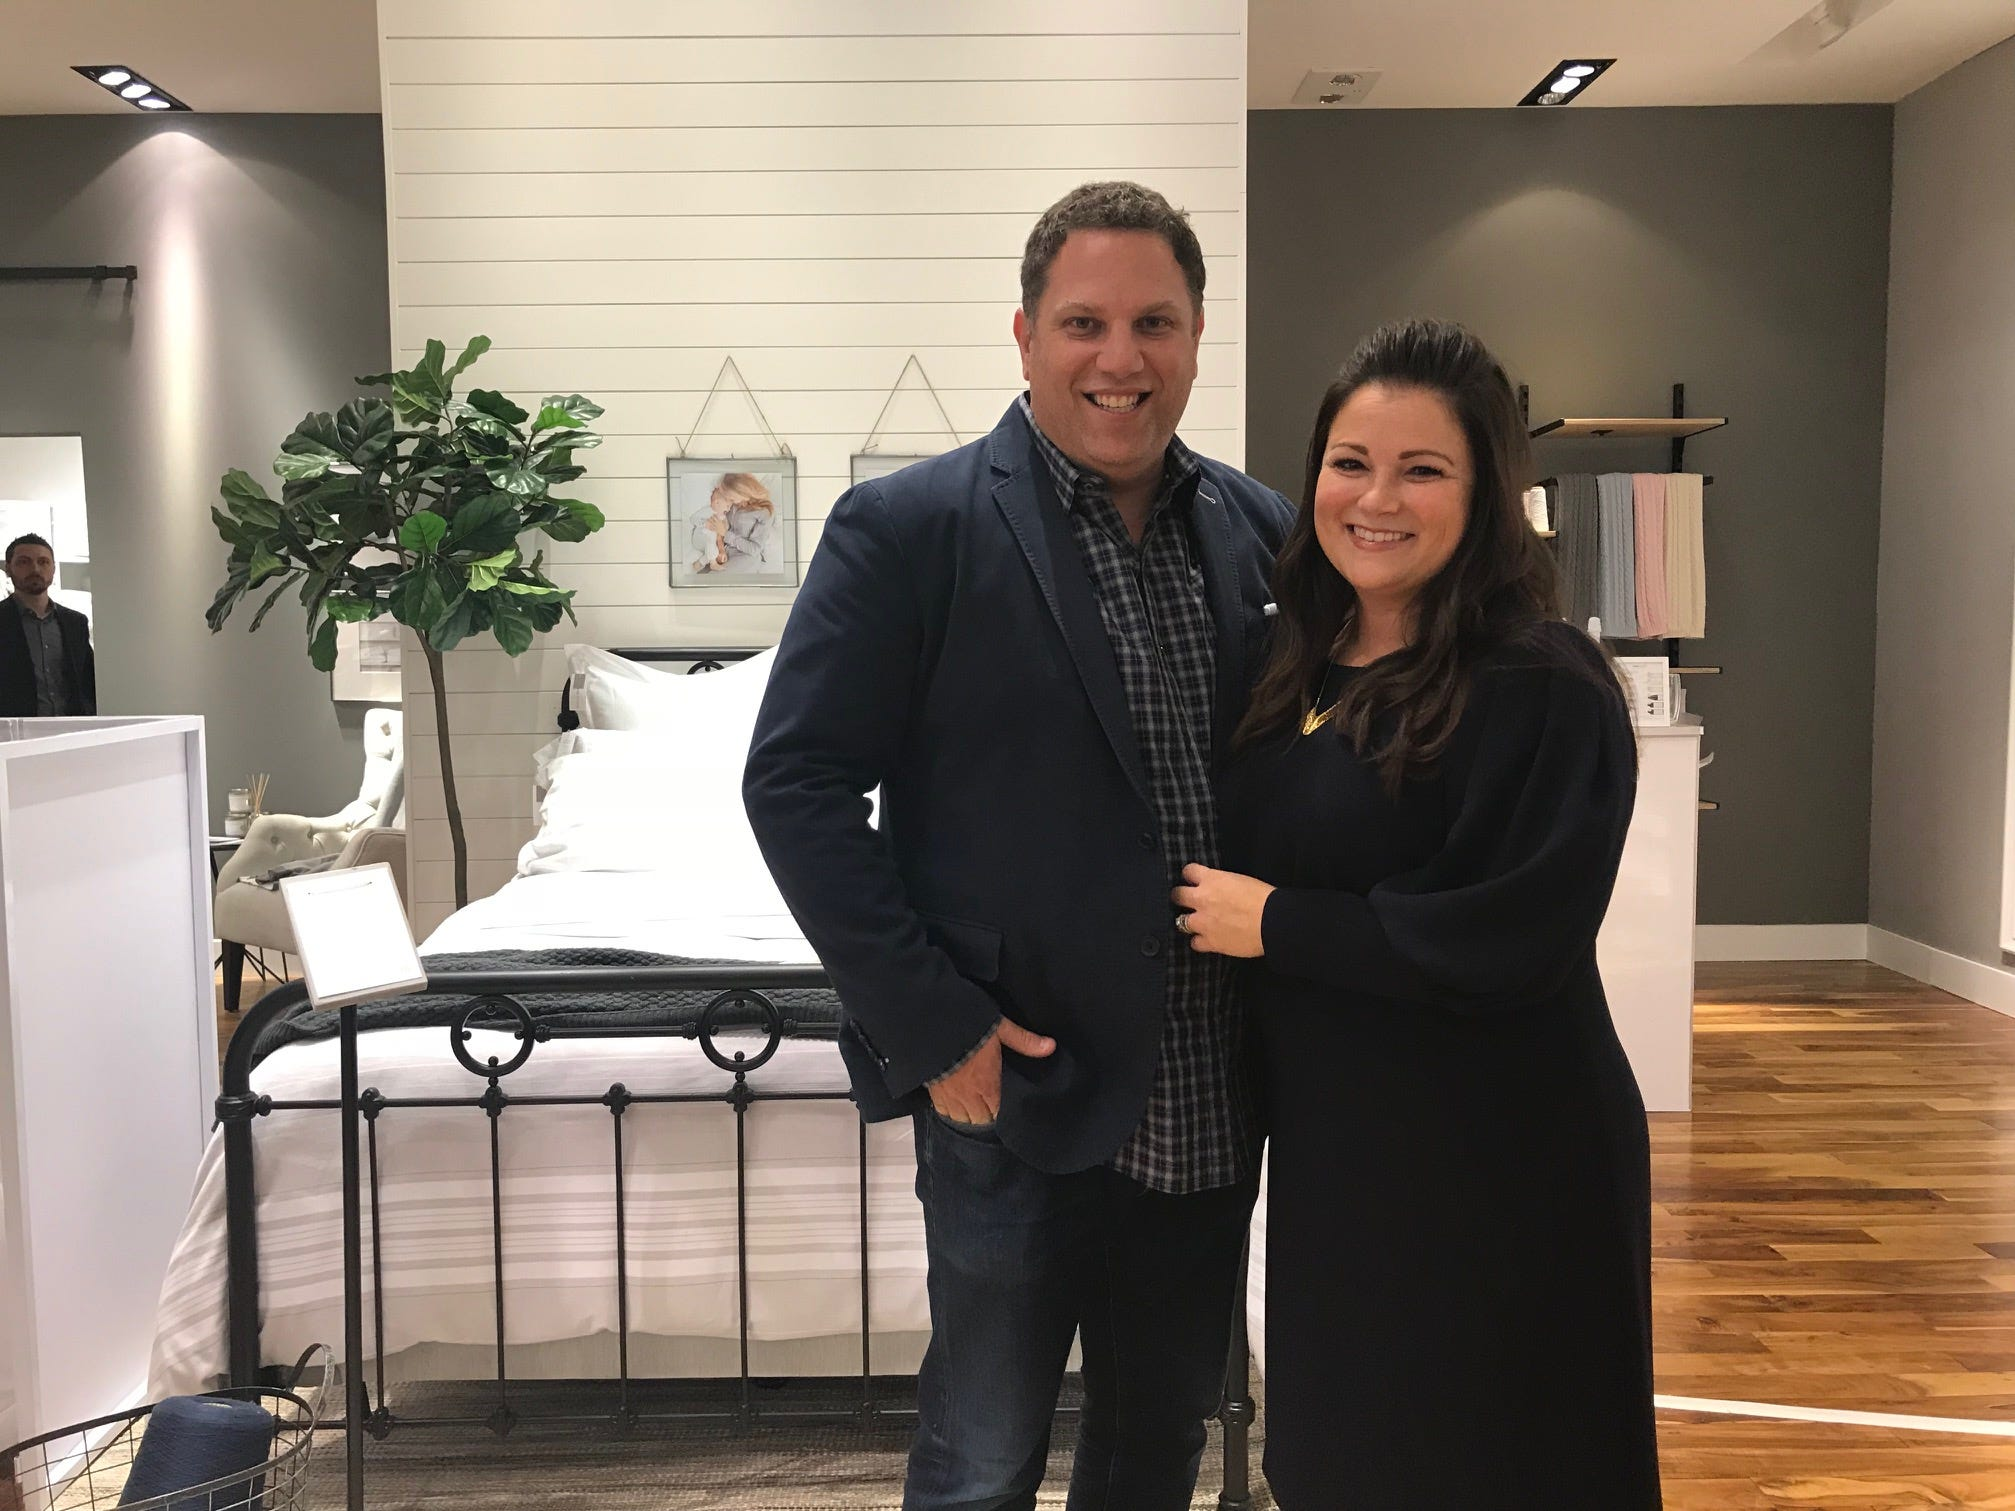 Scott  and Missy Tannen, founders of Summit-based bedding retailer Boll & Branch, recently opened their first store at The Mall at Short Hills. The brick-and-mortar flagship location features the world's first organic, Fair Trade-certified brand's full collection of ethically made and sustainably sourced items.